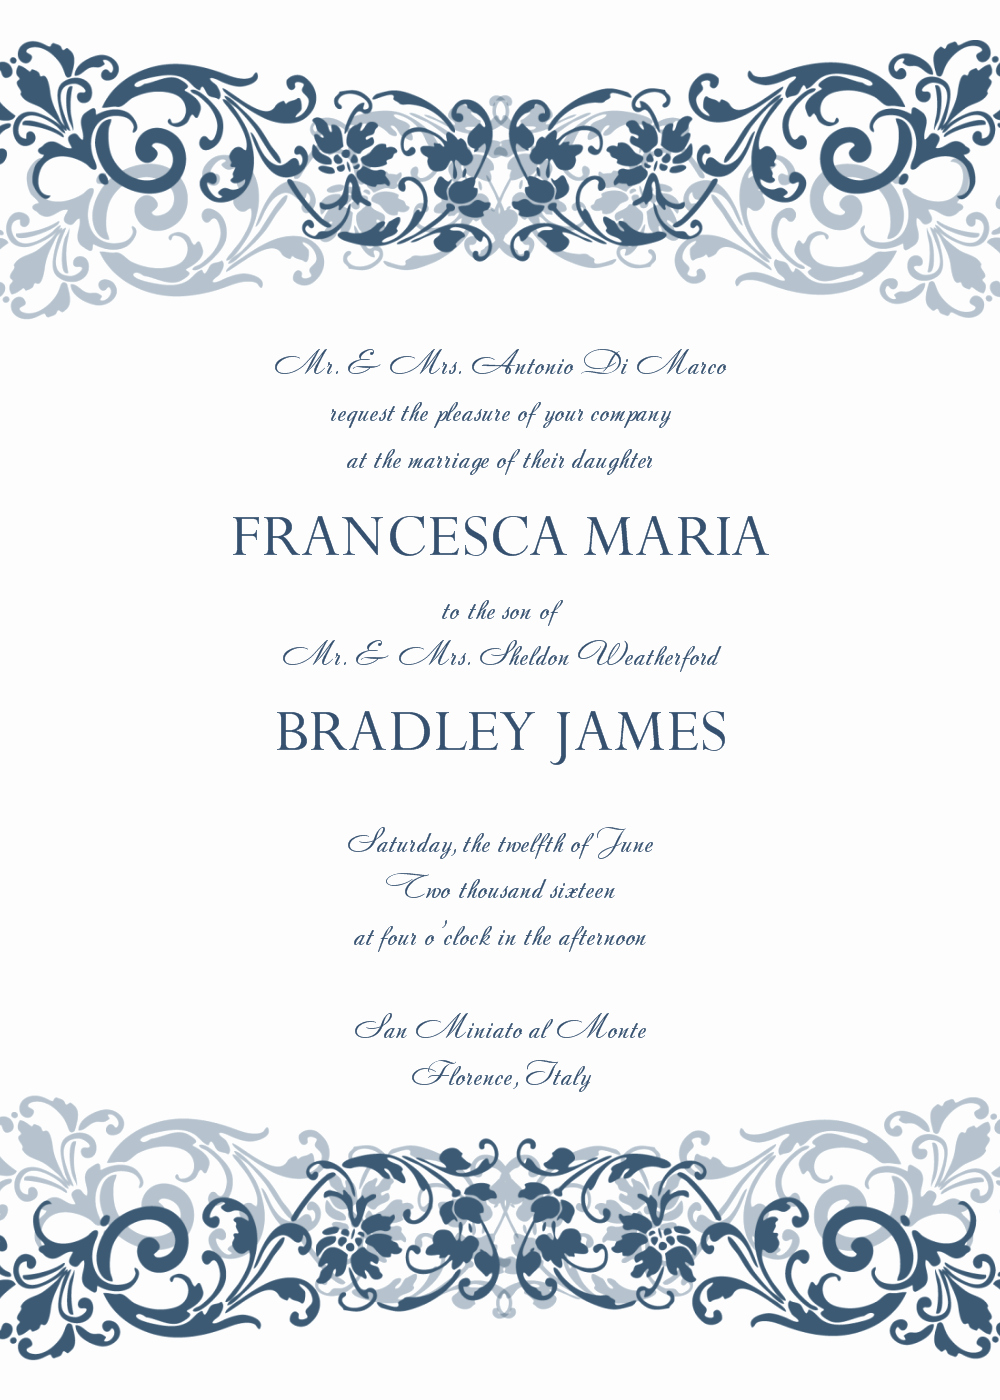 Free Printable Invitation Templates Beautiful 8 Free Wedding Invitation Templates Excel Pdf formats